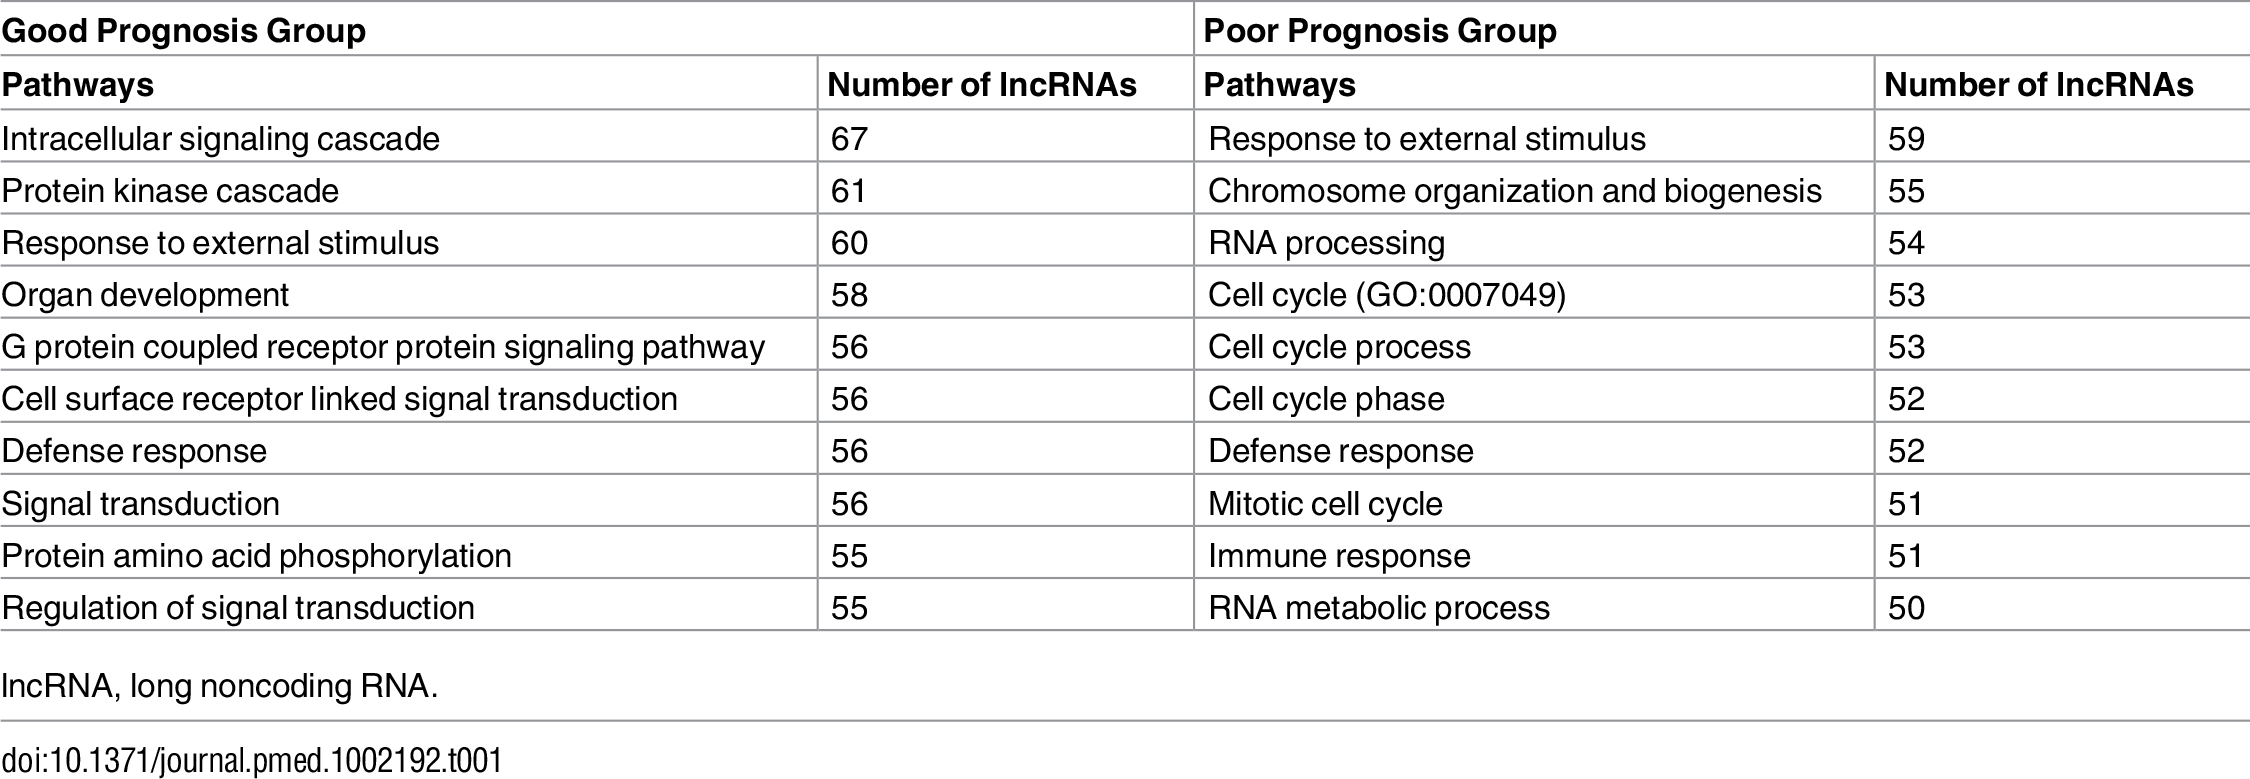 Enriched biological pathways associated with prognostic lncRNAs by guilt-by-association analysis.